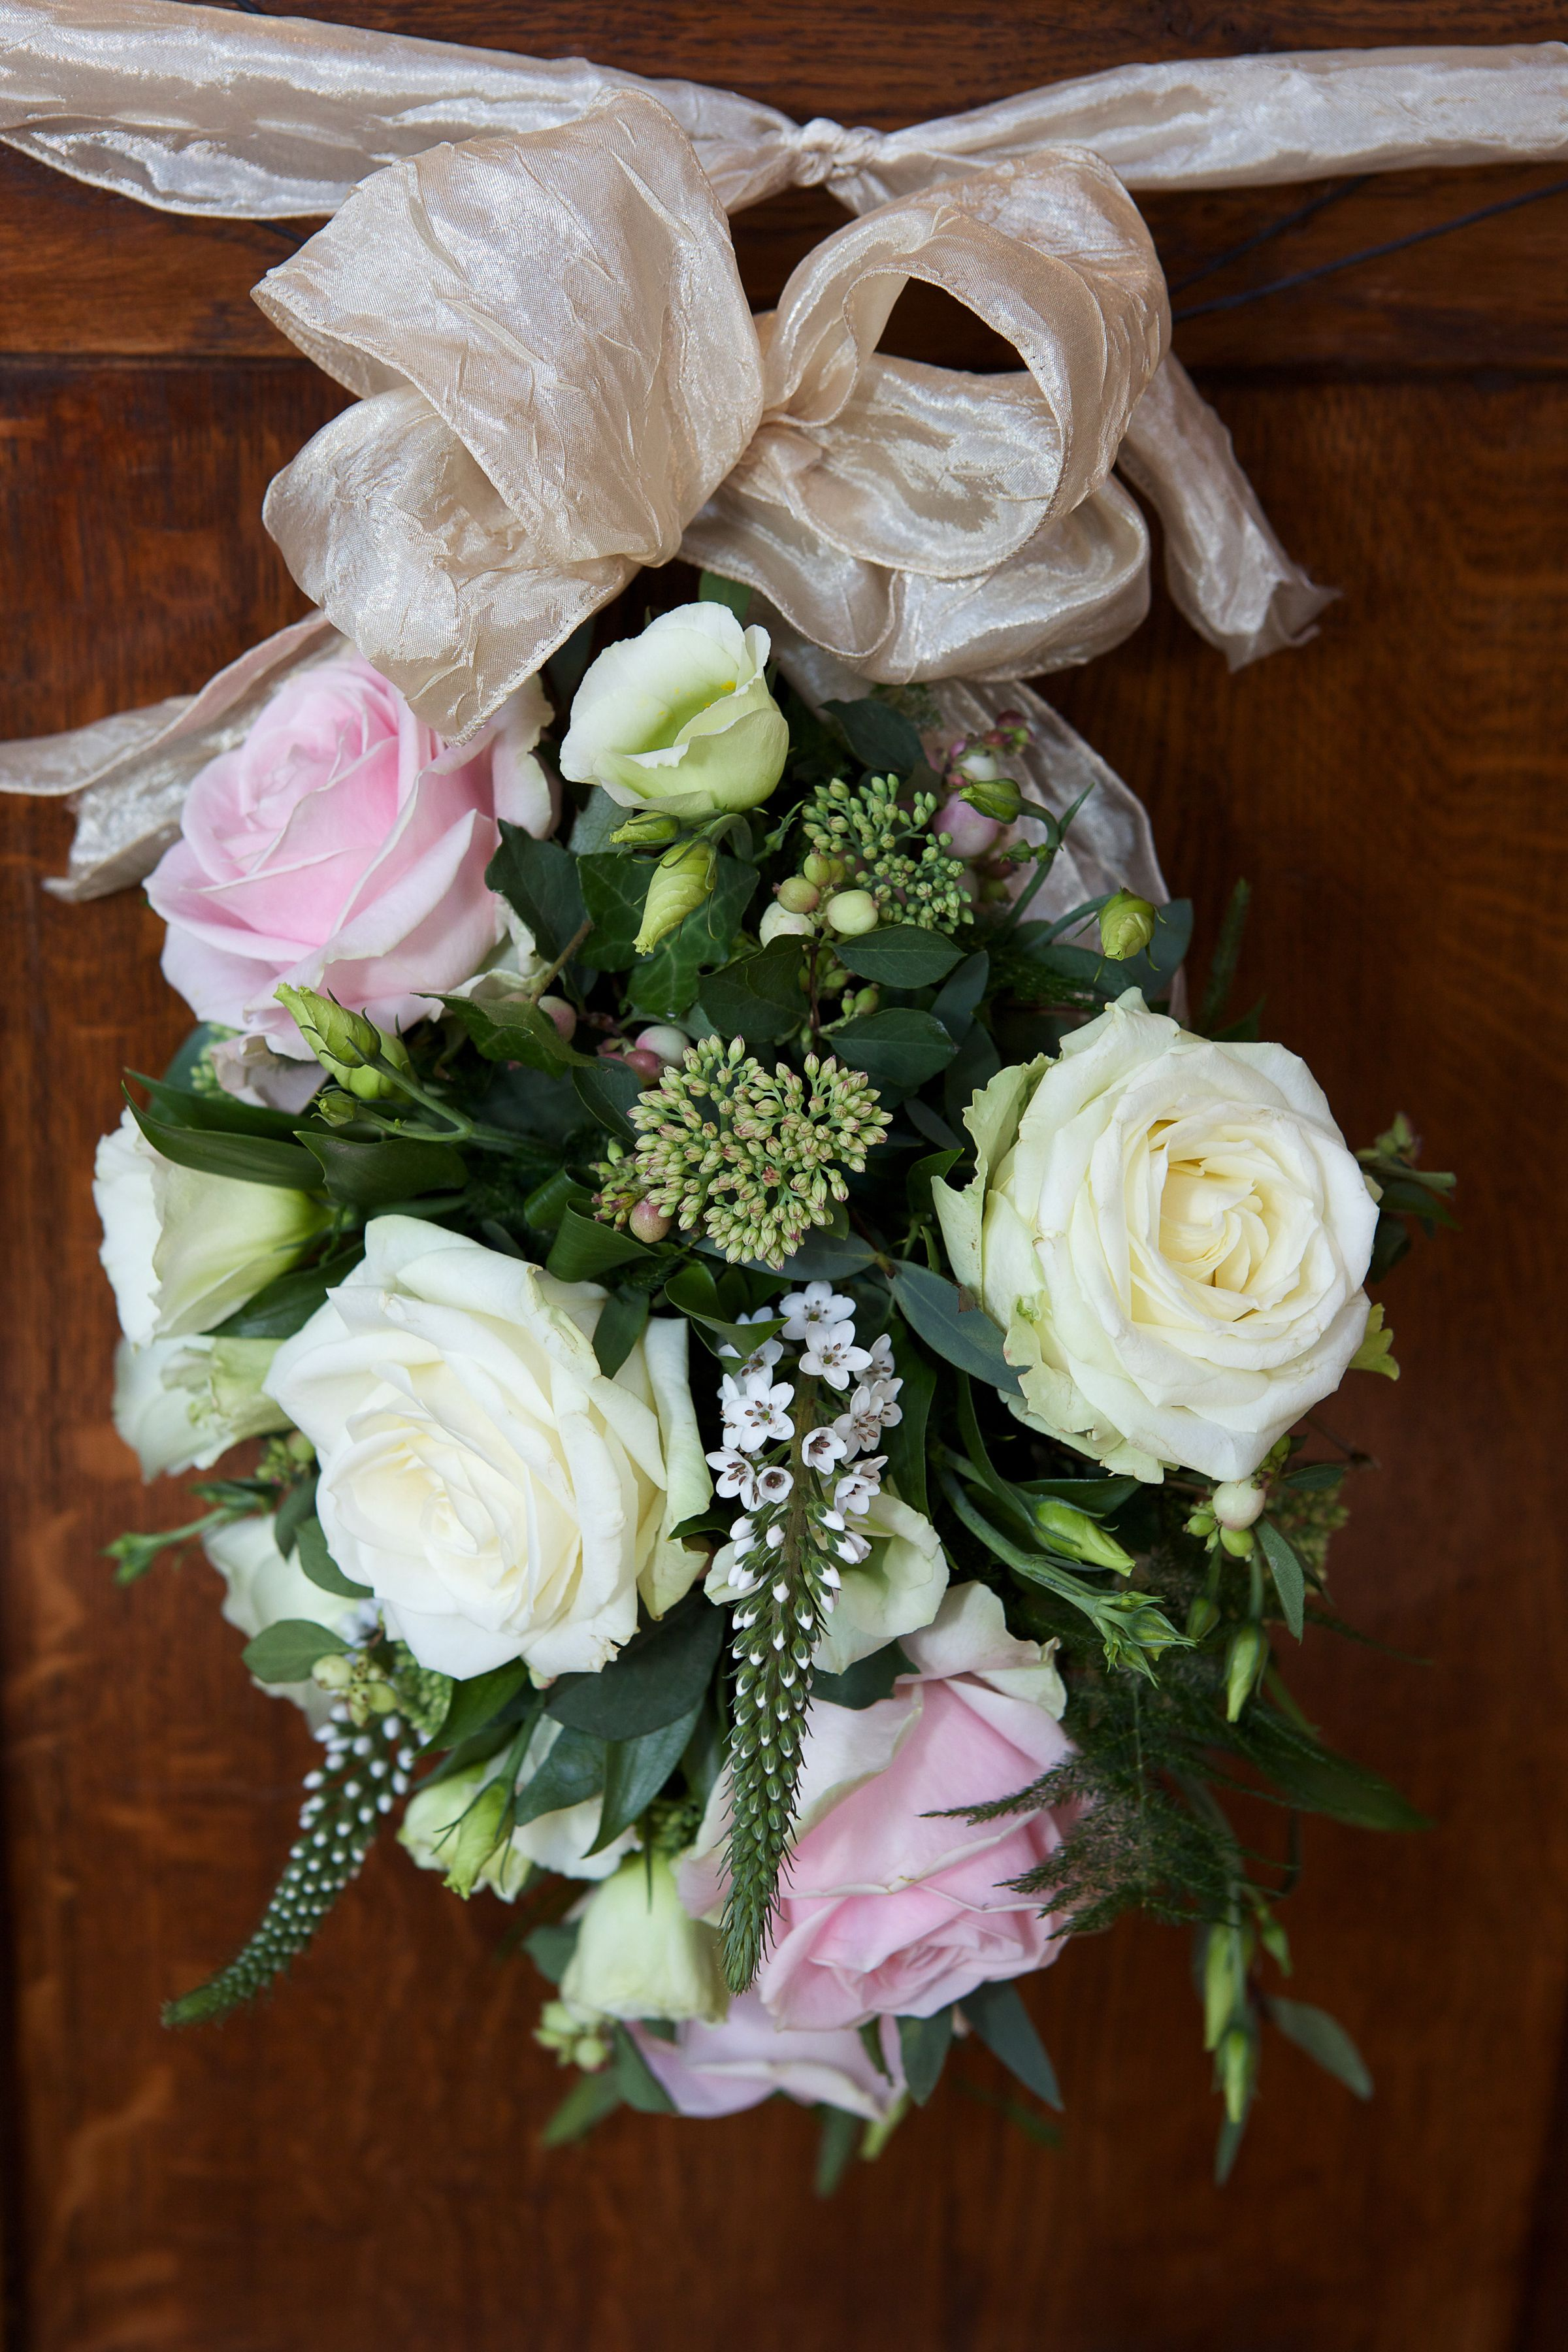 Chairback flowers by fleurs horsham wedding ideas pinterest fleurs the master florist delivering flowers of quality and style flowers delivered in the horsham and west sussex delivery options include same day junglespirit Gallery